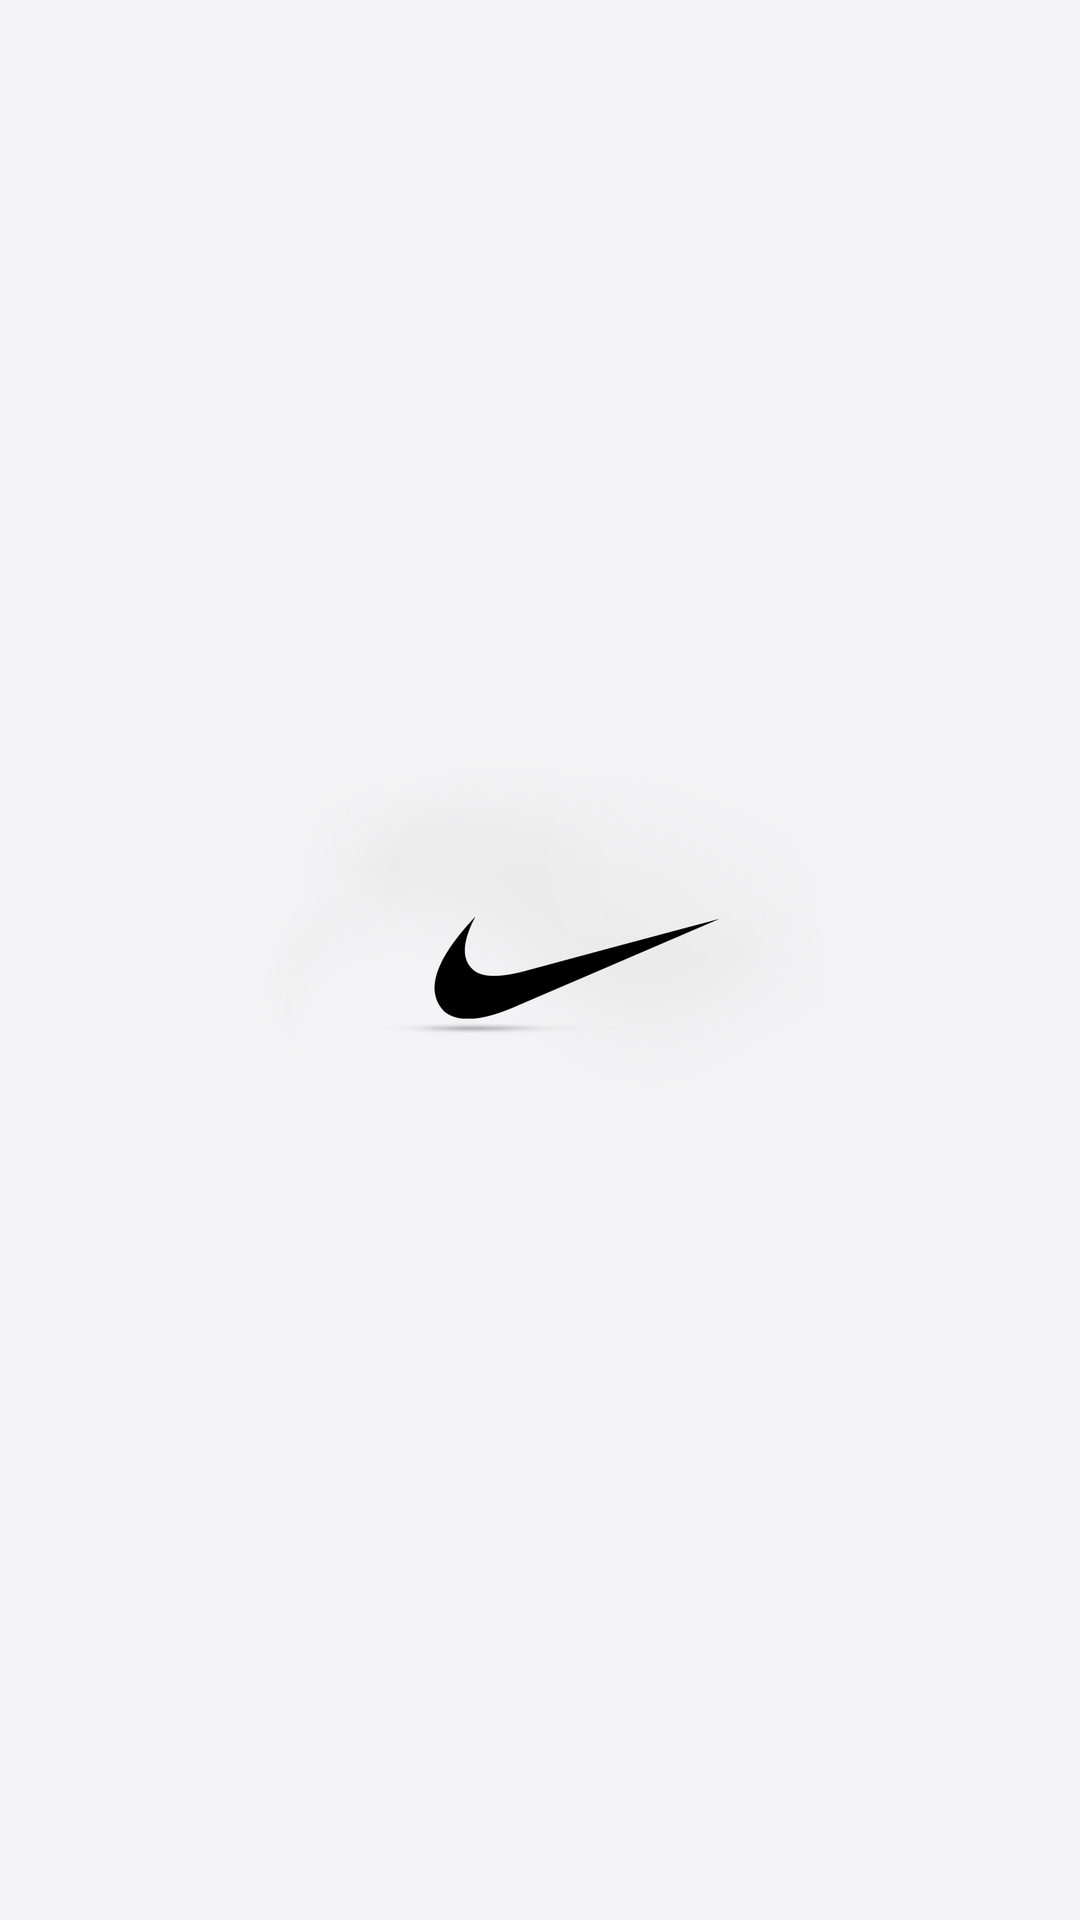 Nike htc one wallpaper